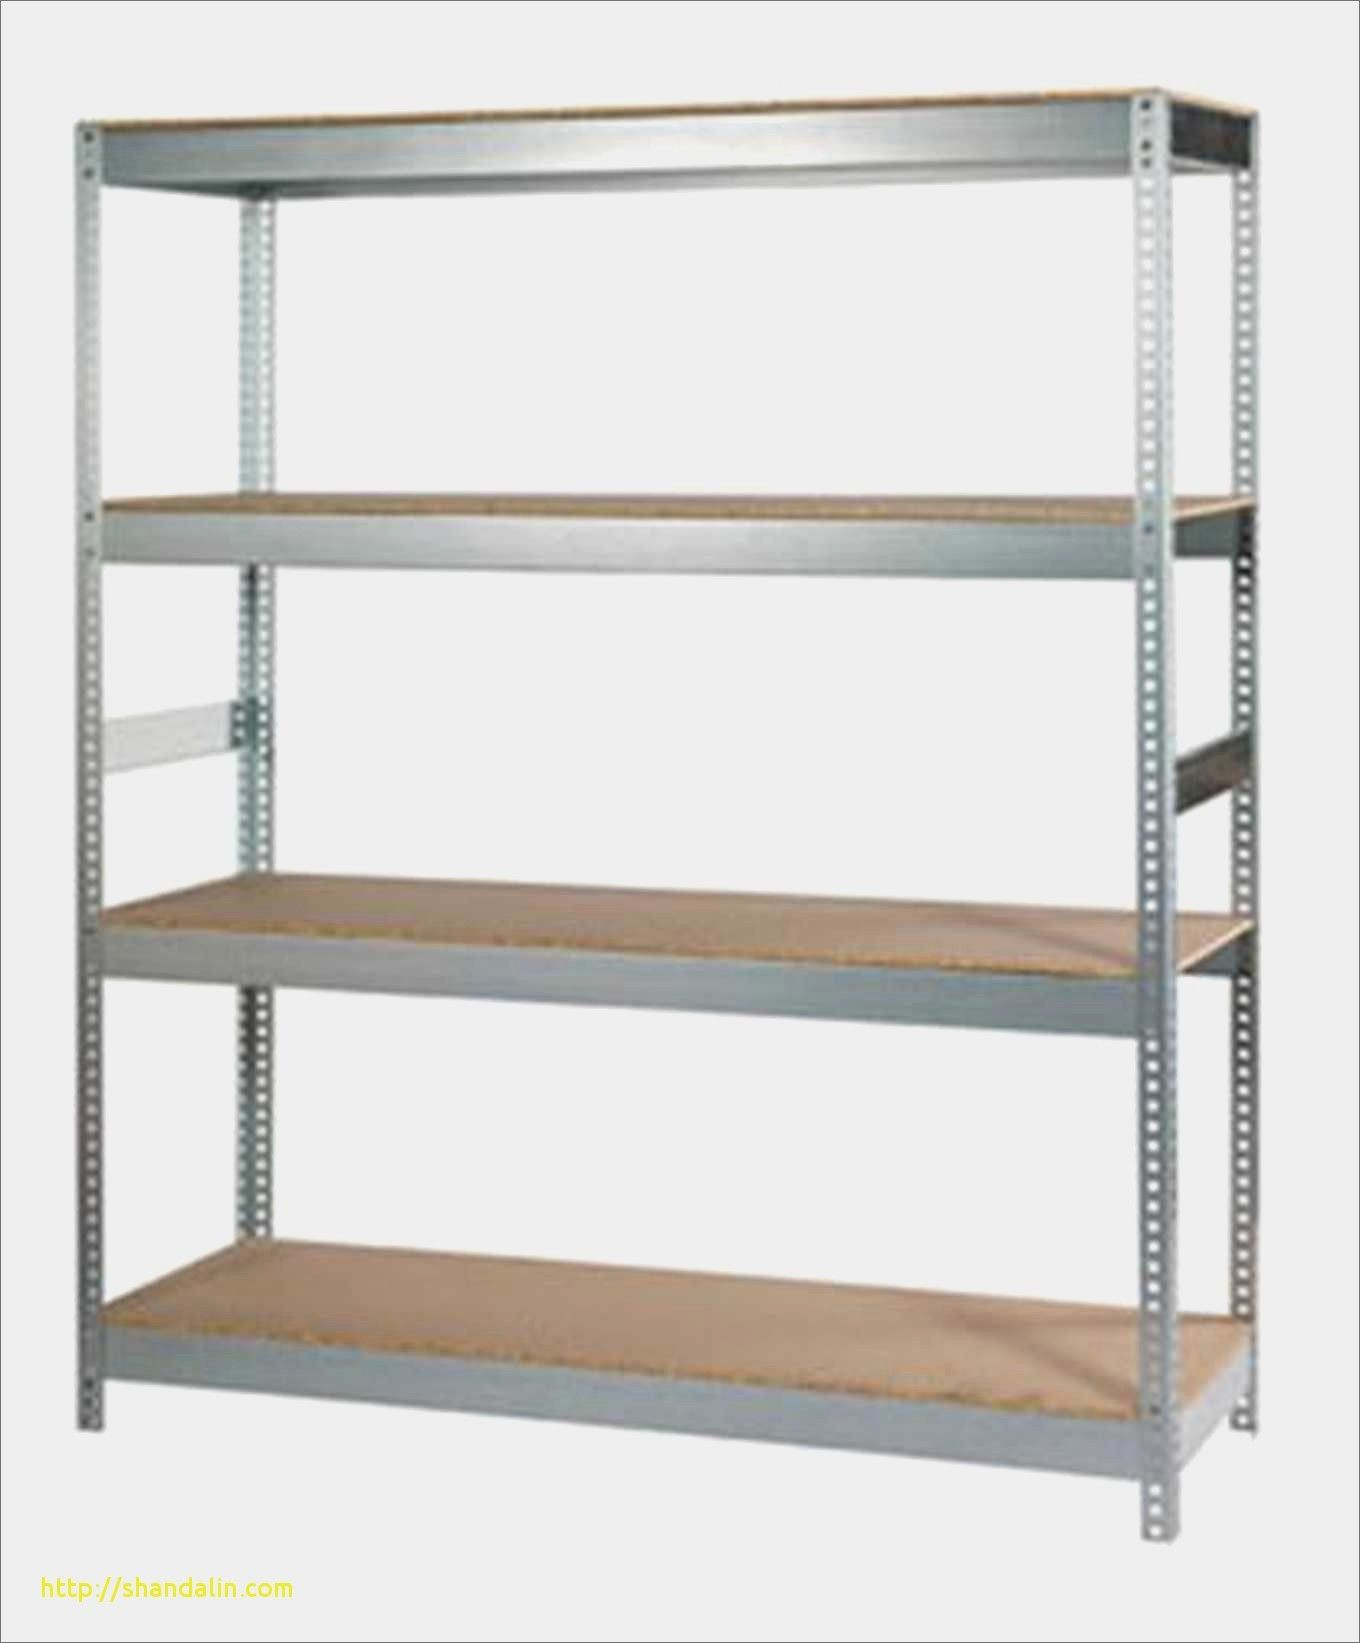 Etagere Metal 180 X 90 X 40 Cm Etagere Murale Castorama Rayonnage Etagere